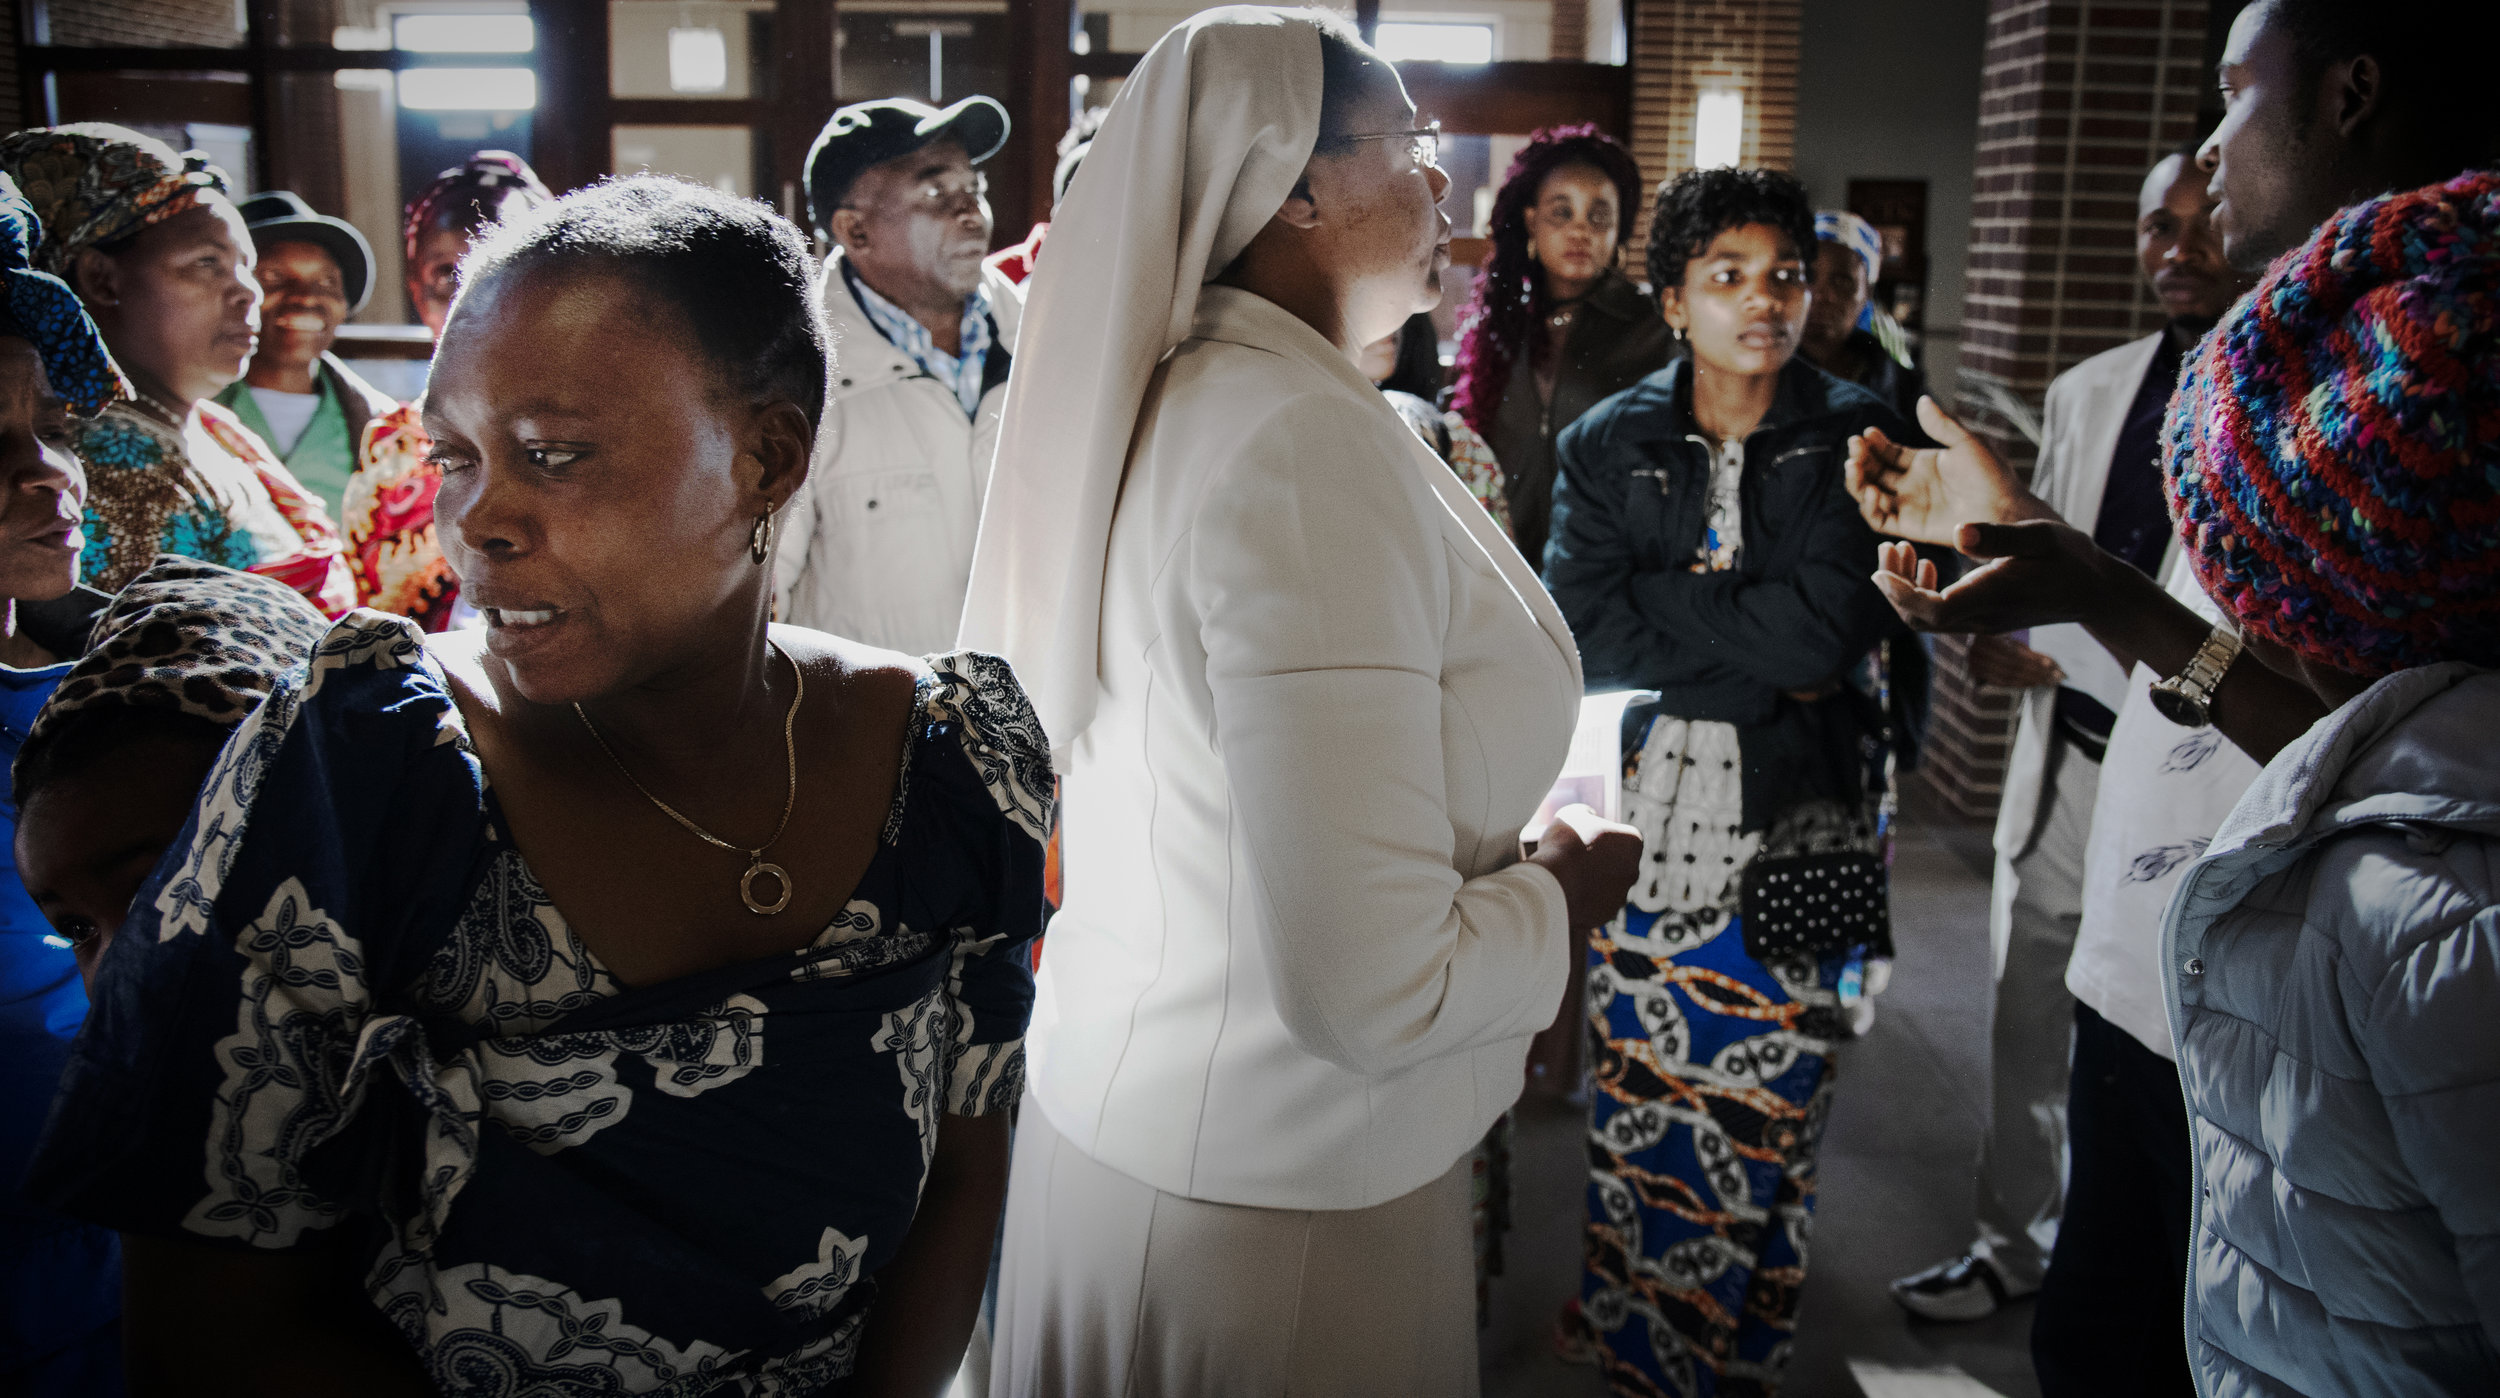 """Sister Joshua speaks with families of Congolese refugees following the Sunday mass at Holy Spirit Catholic Church. """"One thing I do know is that we have so much in common,"""" Sister Joshua said. Sometimes they do some things differently than the way i would do it, but sometimes I look at some of [their] cultures, and everything they do is exactly the same way, you know? So it is a privilege for me to welcome them as well."""""""